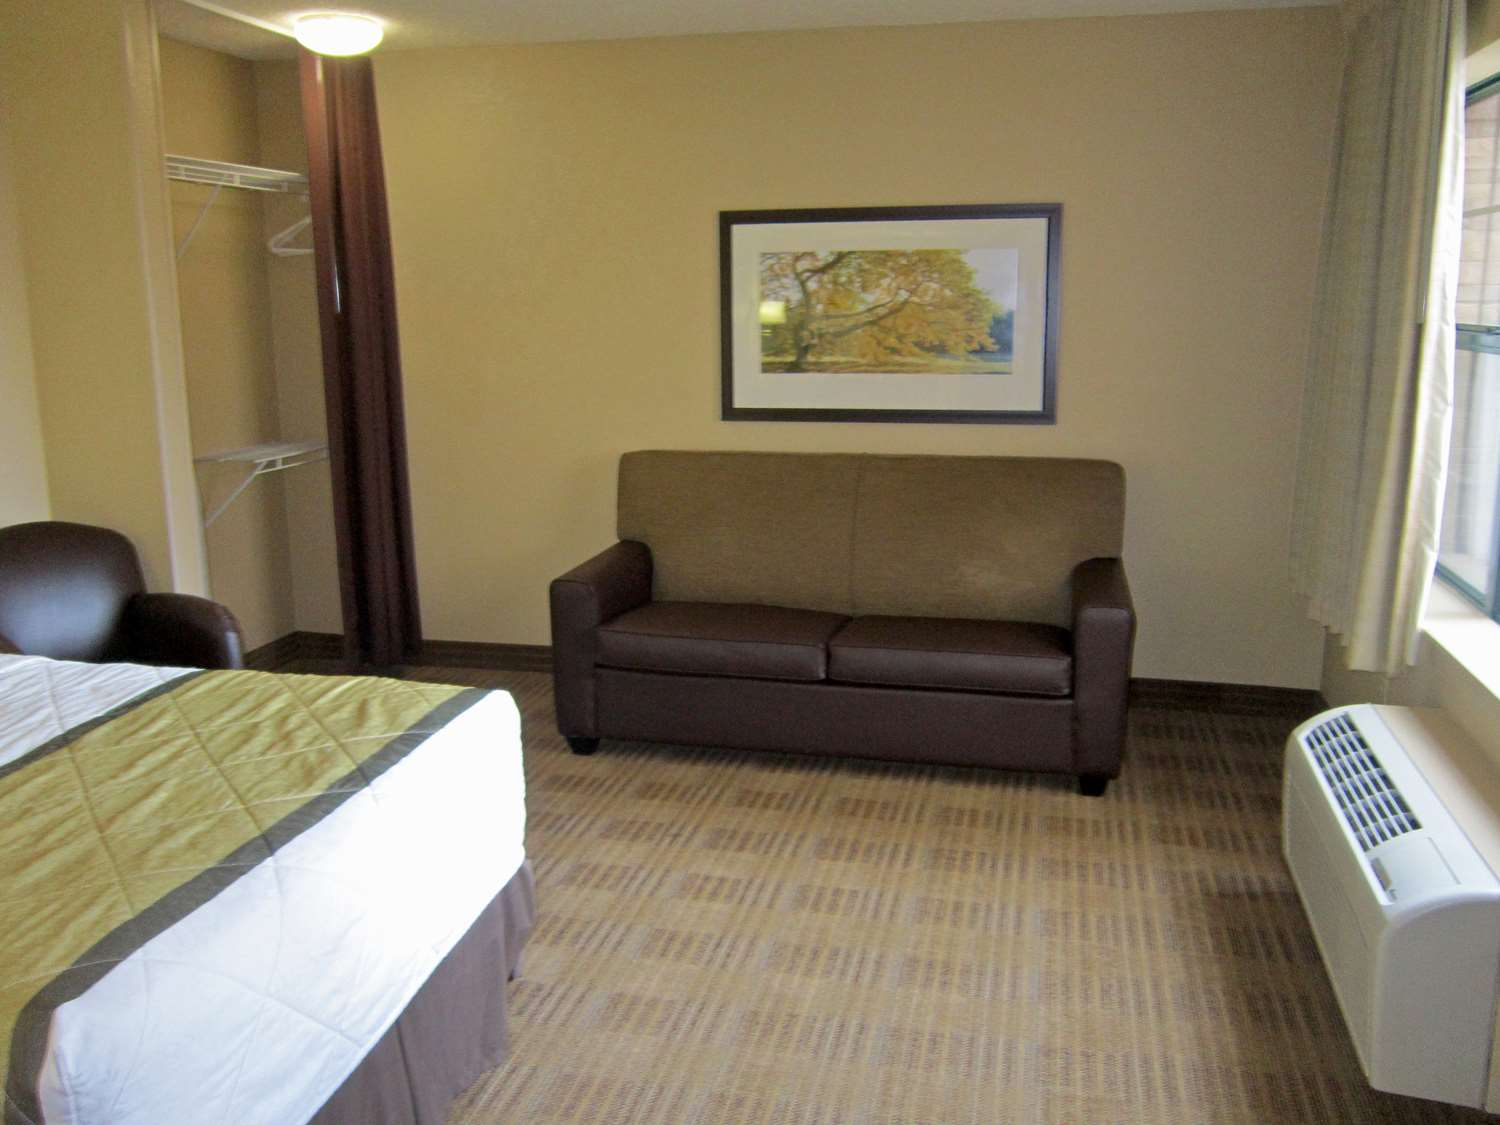 Extended Stay America Hotel Duluth, GA - See Discounts